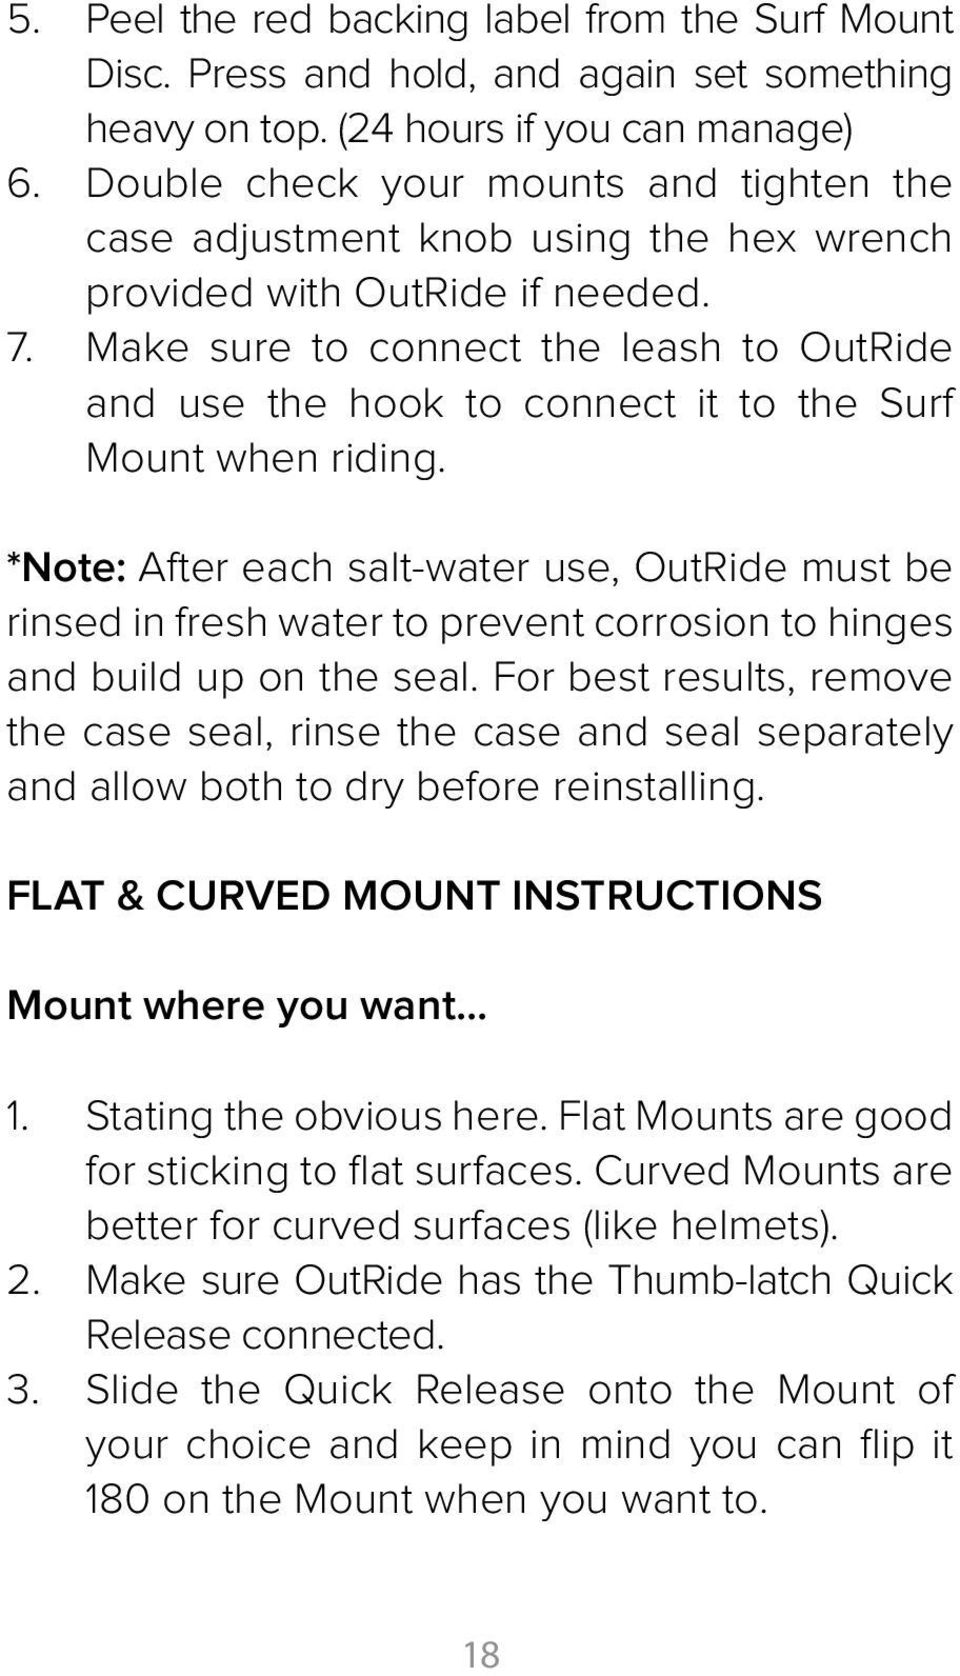 Make sure to connect the leash to OutRide and use the hook to connect it to the Surf Mount when riding.